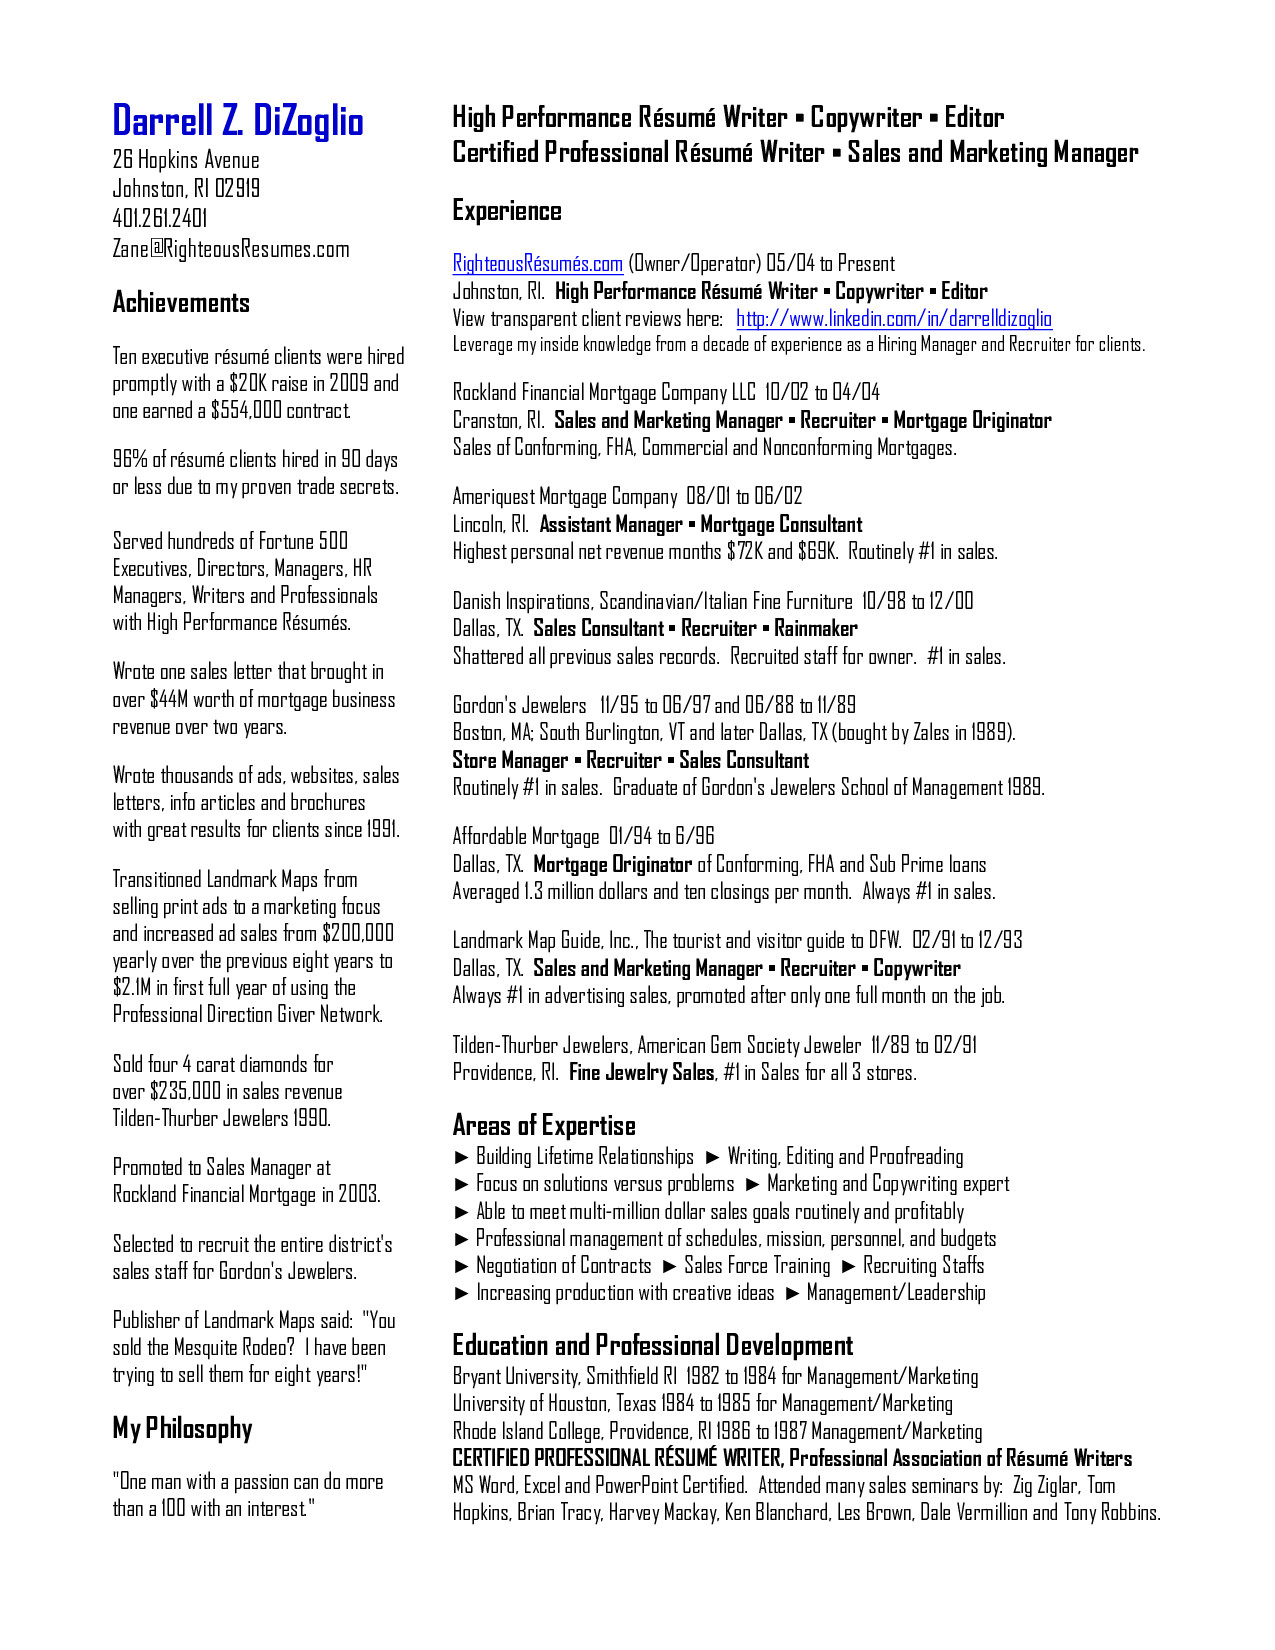 Rfp Cover Letter Template - Rfp Cover Letter Luxury How to Write An Excellent Resume Rfp